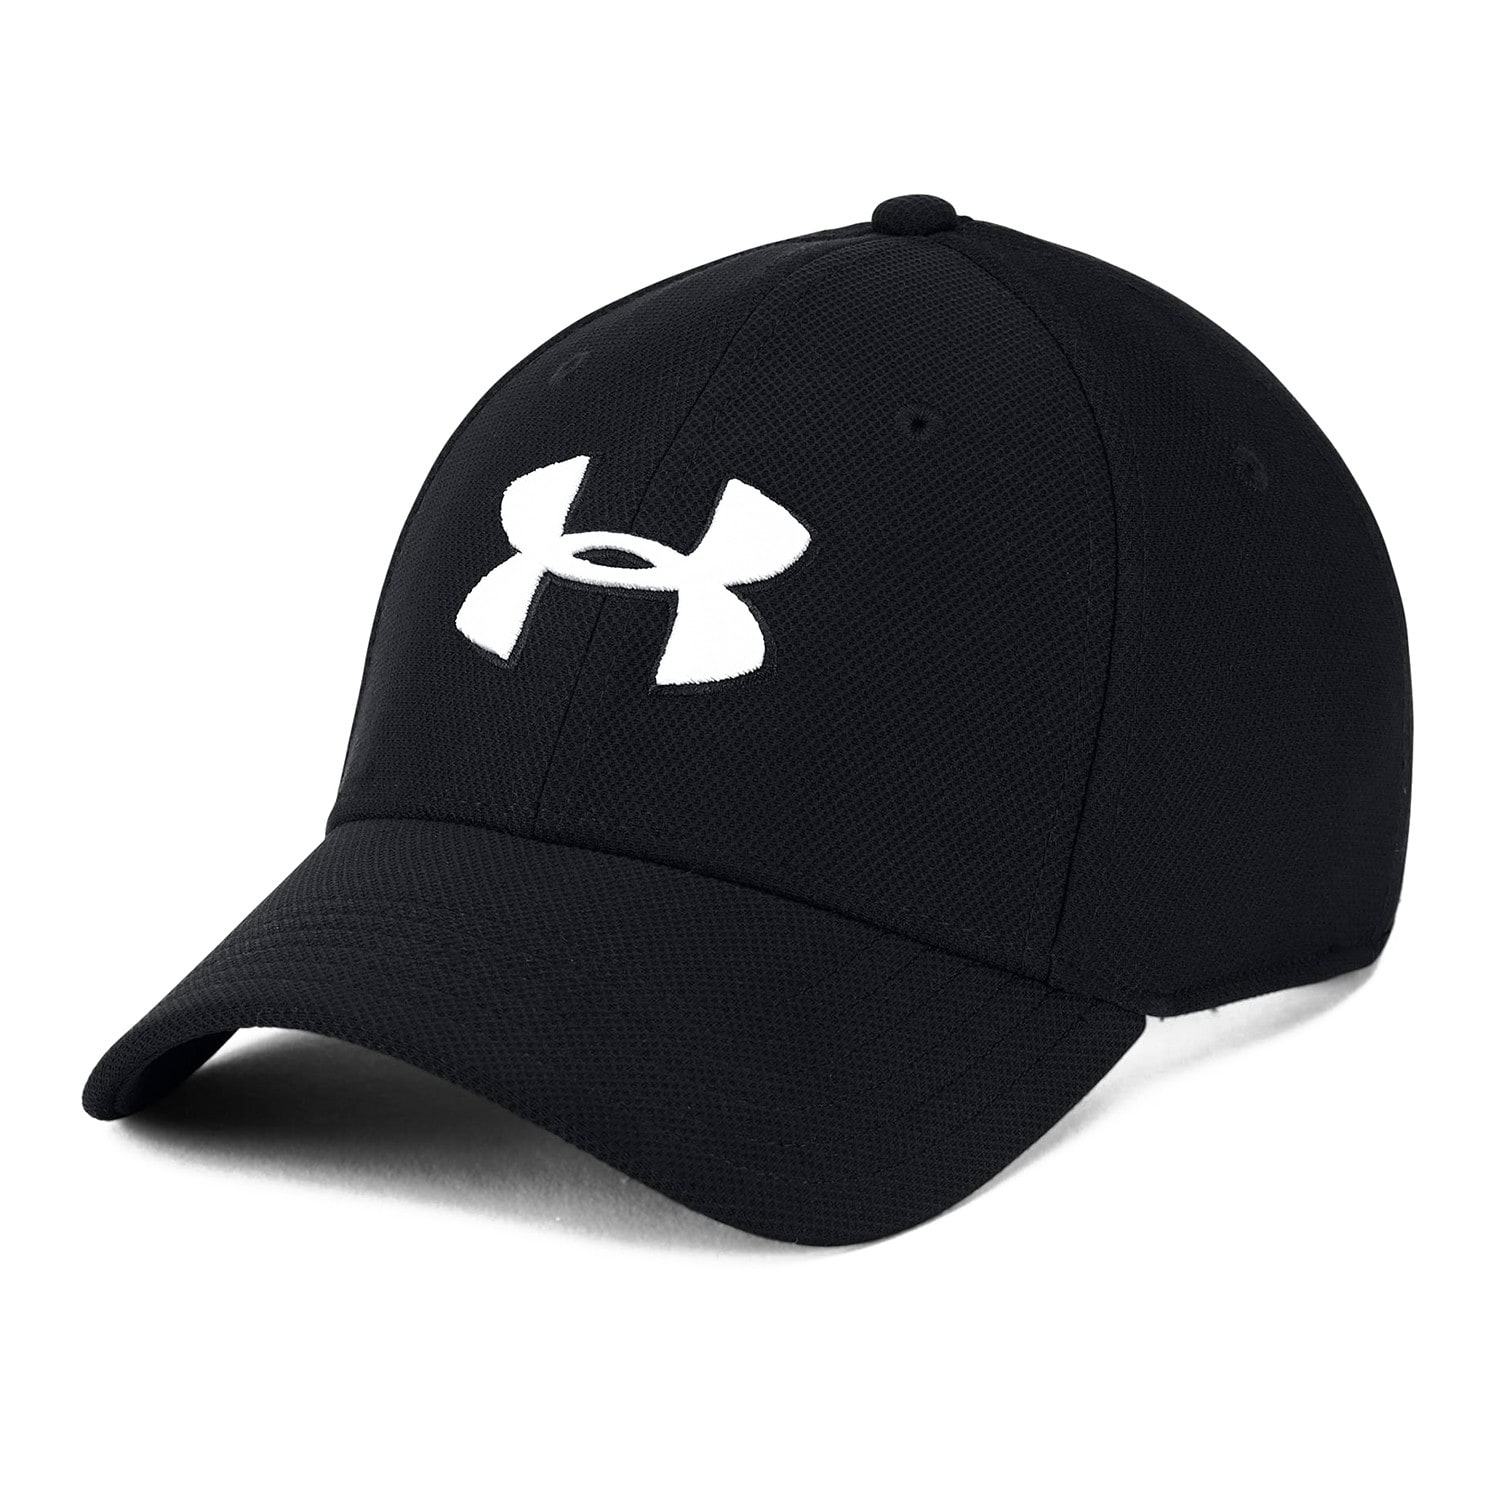 UNDER ARMOUR BLITZING 3.0 CAP 1305036-001